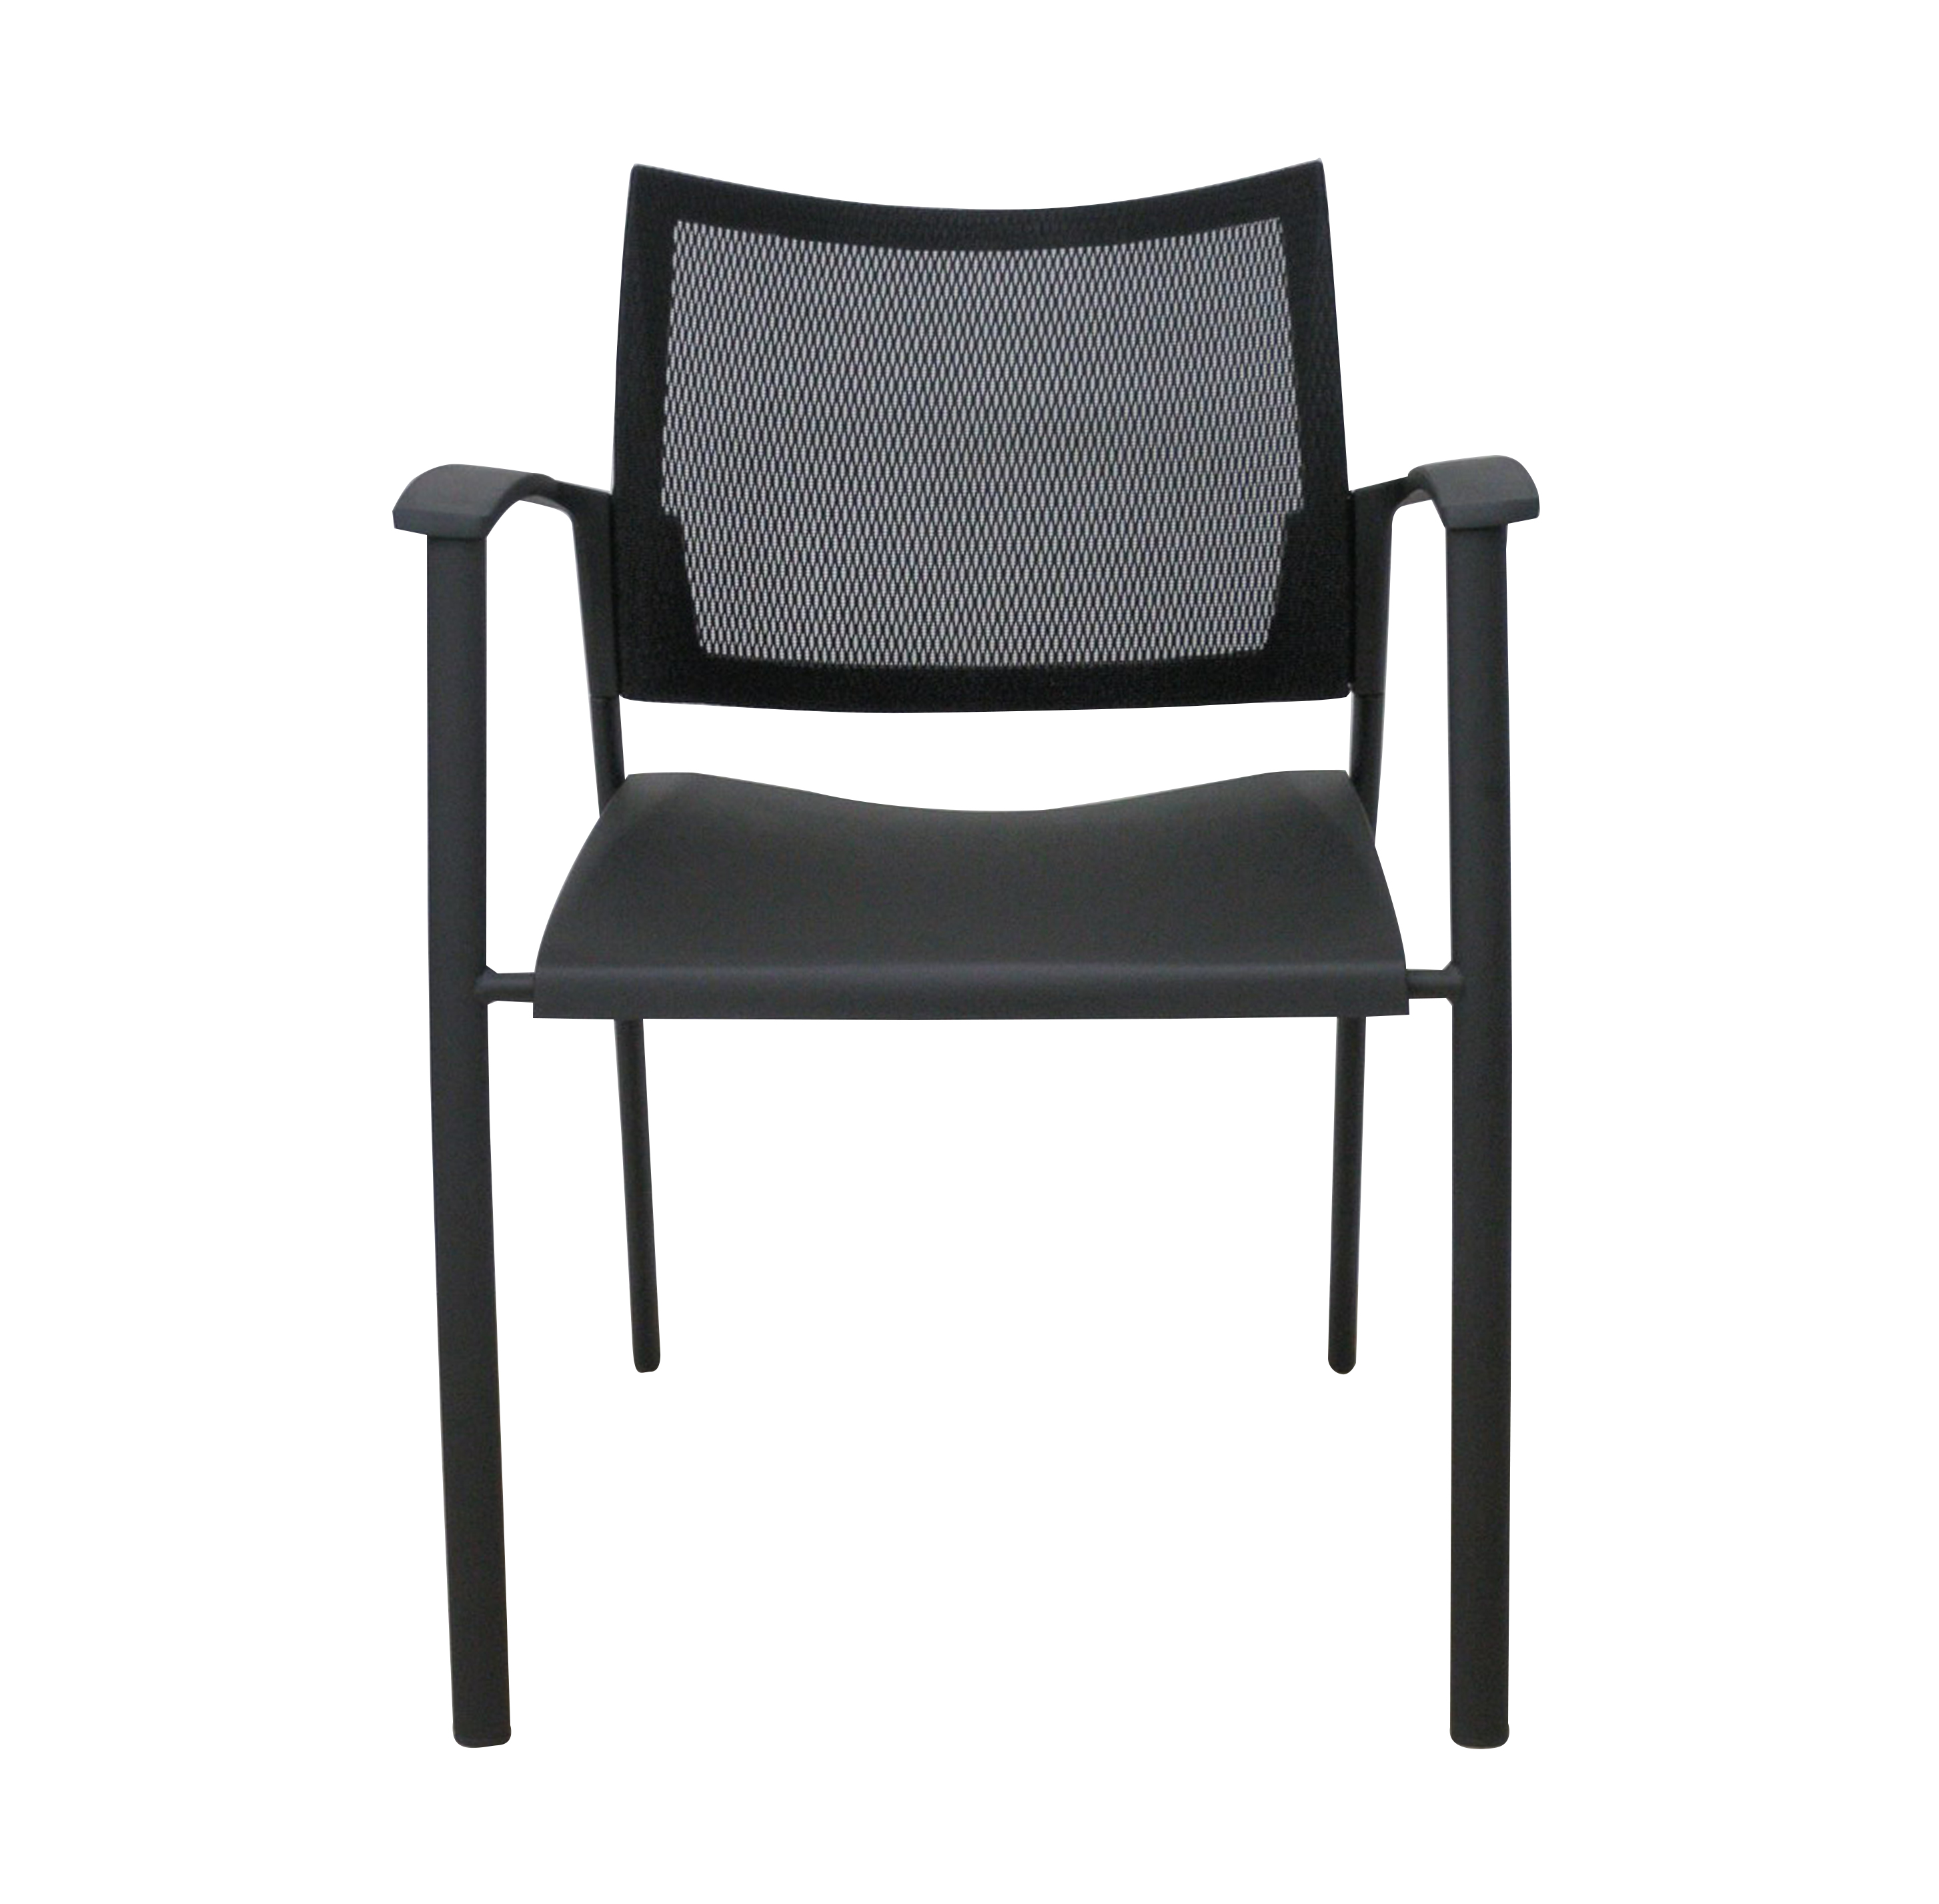 Sita Australian Made Visitor Chair